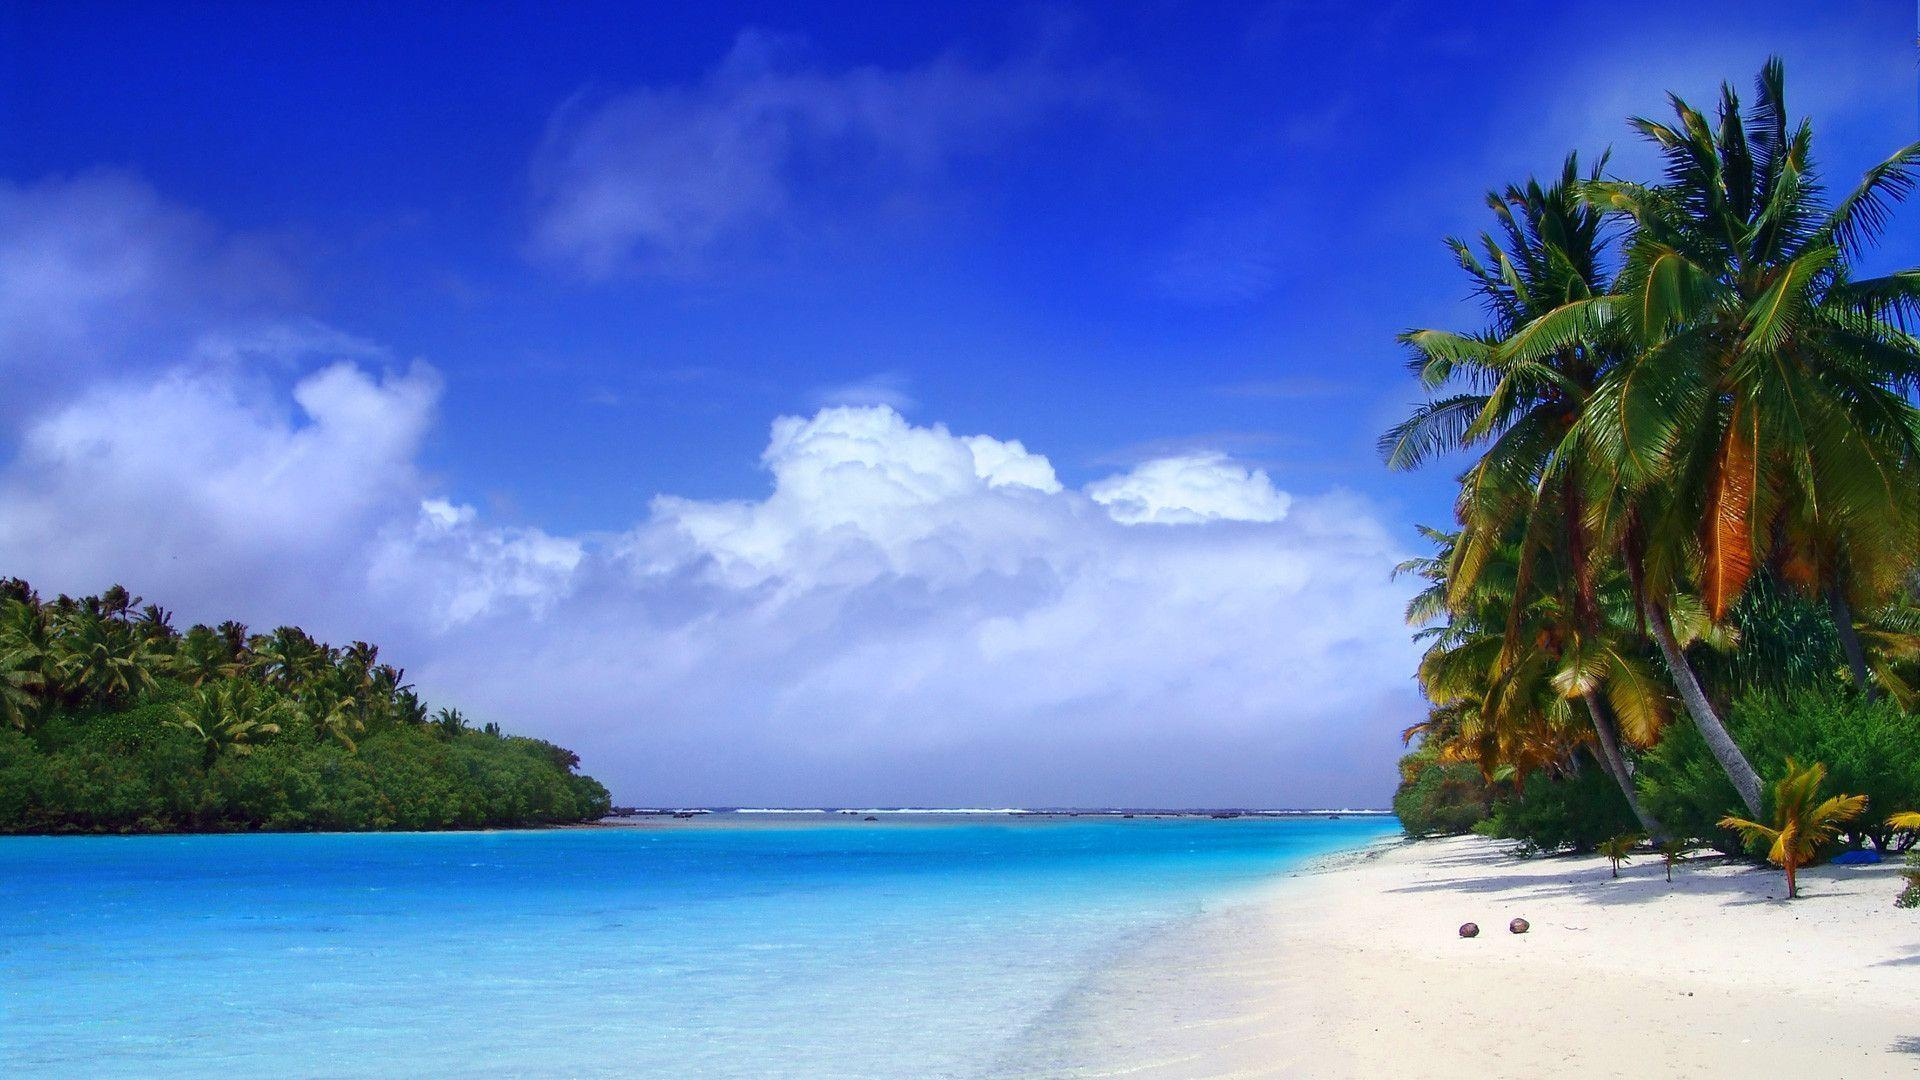 Free Caribbean Beach Wallpapers - Wallpaper Cave